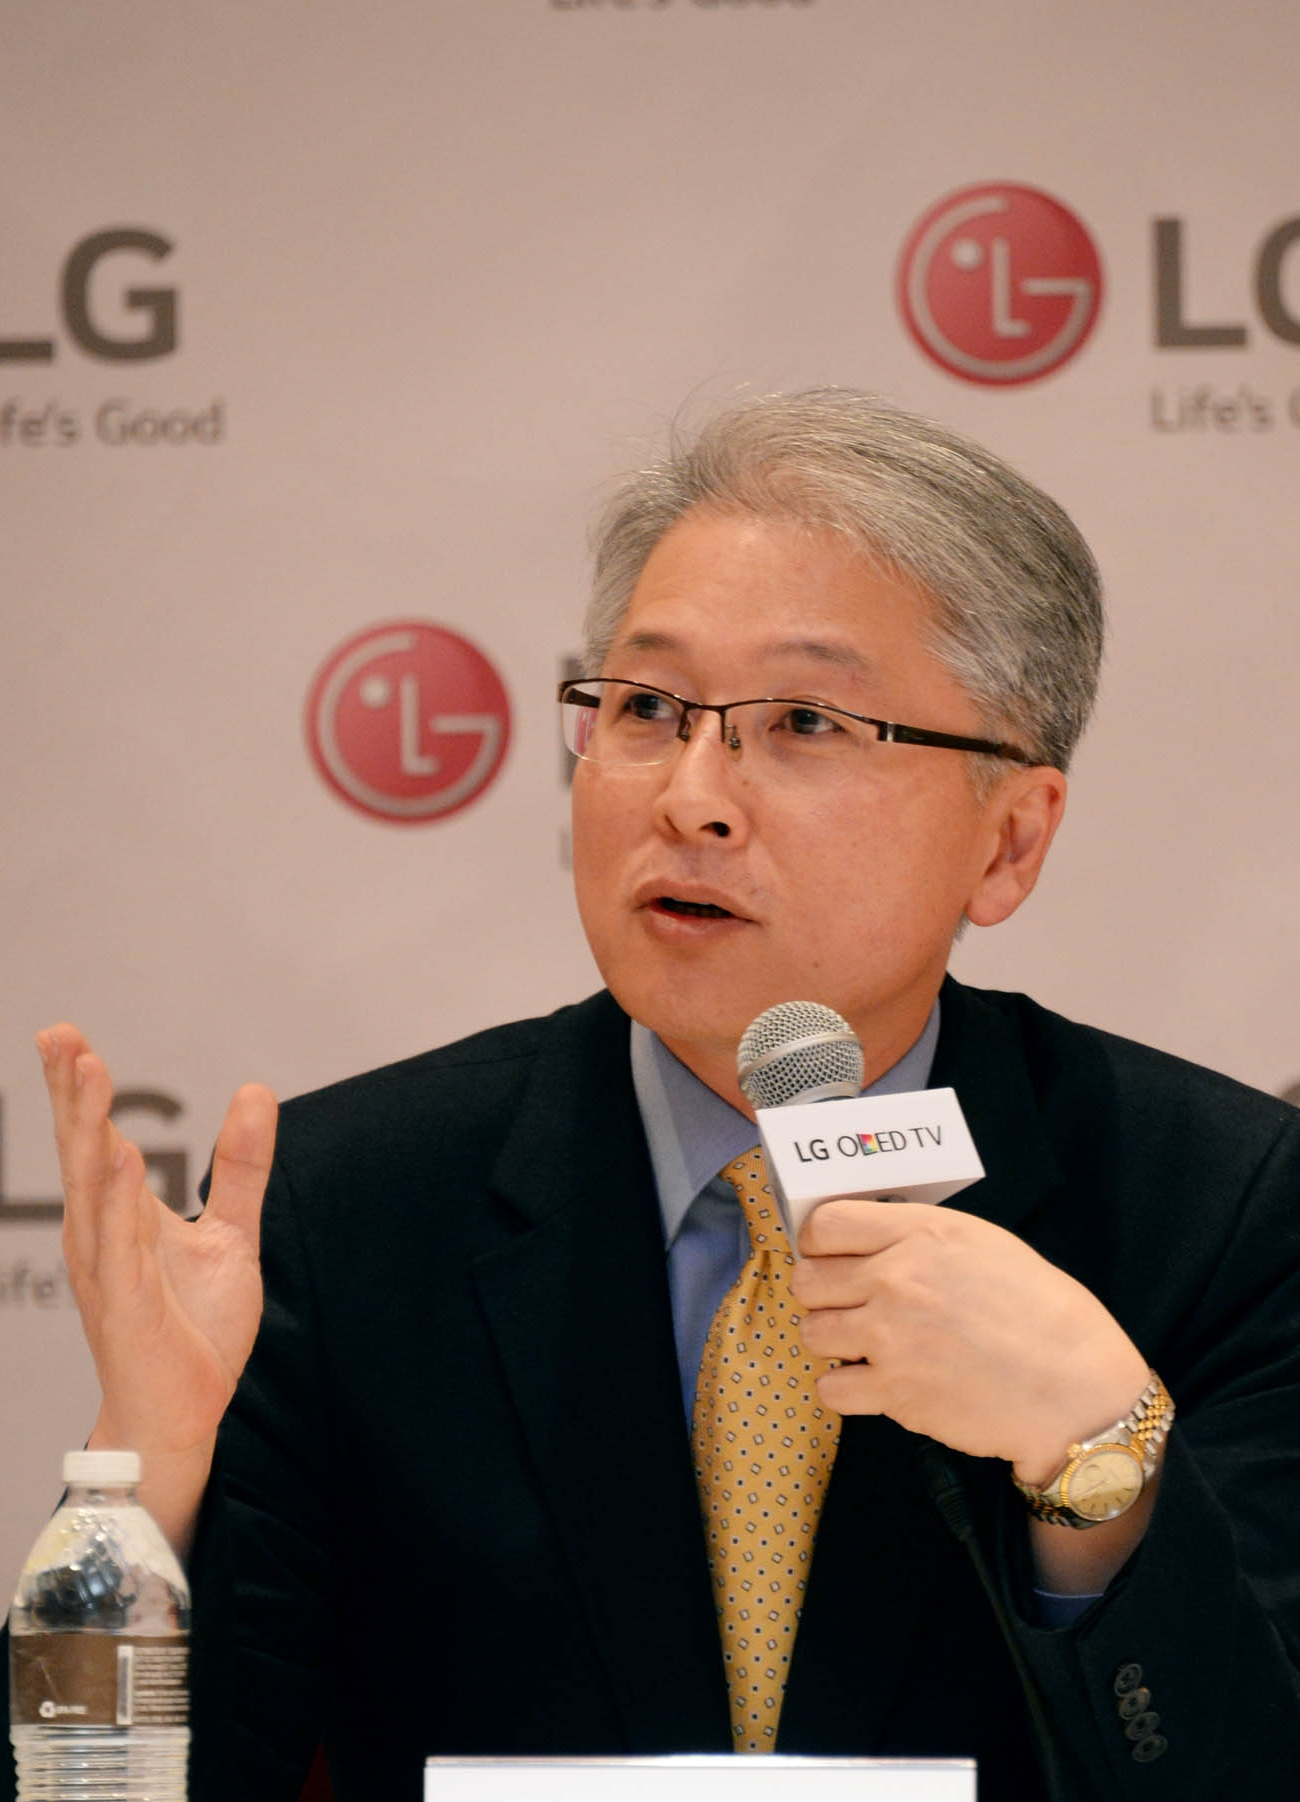 LG Home Entertainment Company CEO, Brian Kwon, outlines the company's TV technology along with product and marketing plans for the coming year at International CES 2015